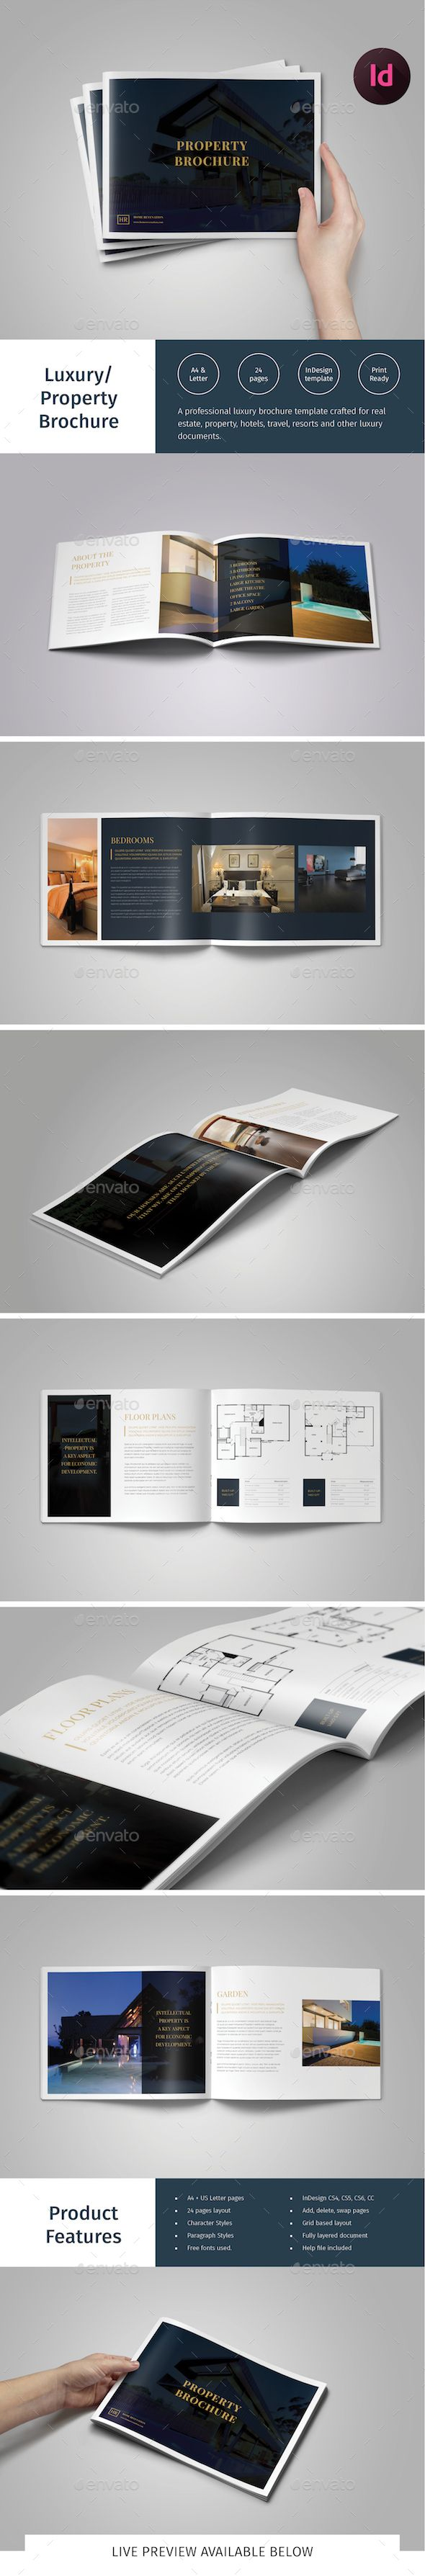 Luxury Brochure/ Hotel, Property Catalog — InDesign INDD #real estate #layout • Available here → https://graphicriver.net/item/luxury-brochure-hotel-property-catalog/15059201?ref=pxcr